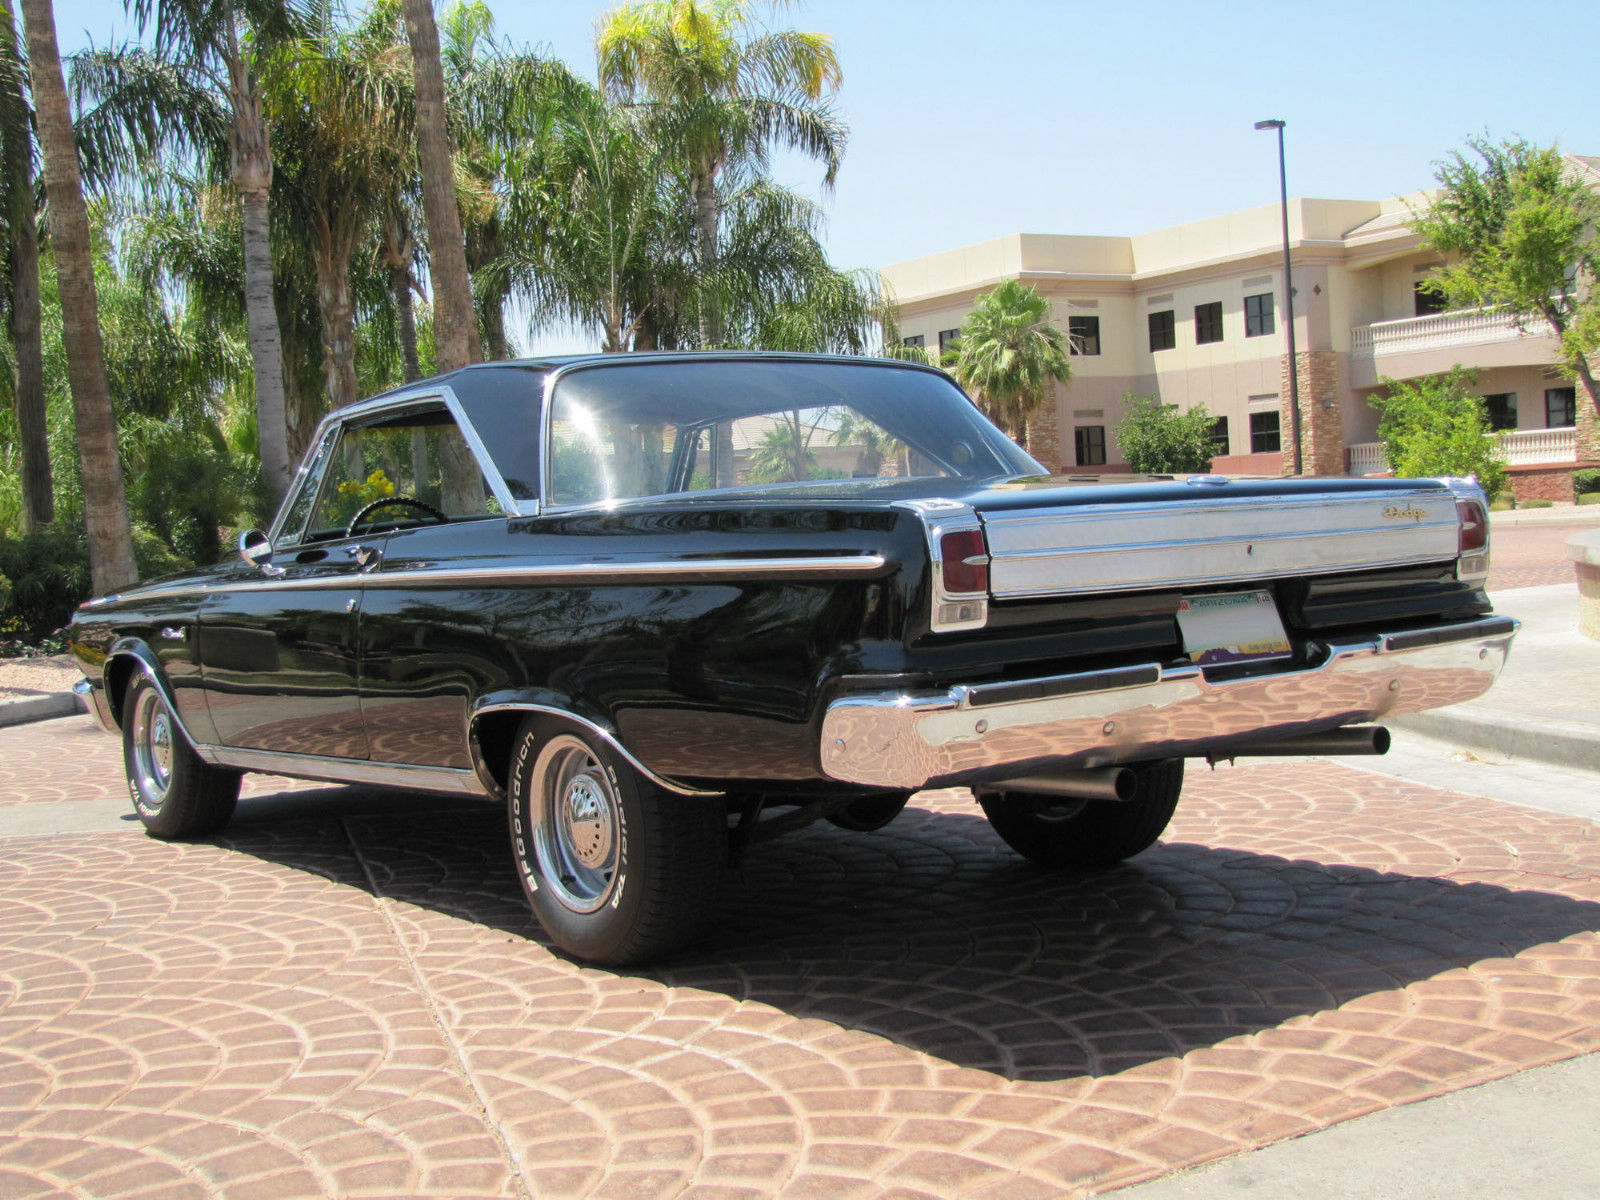 1965 Dodge Coronet 500 Two Door Coupe Max Wedge 426 Ci Dual 4 Bbl Cross Ram 4 Sd Classic Dodge